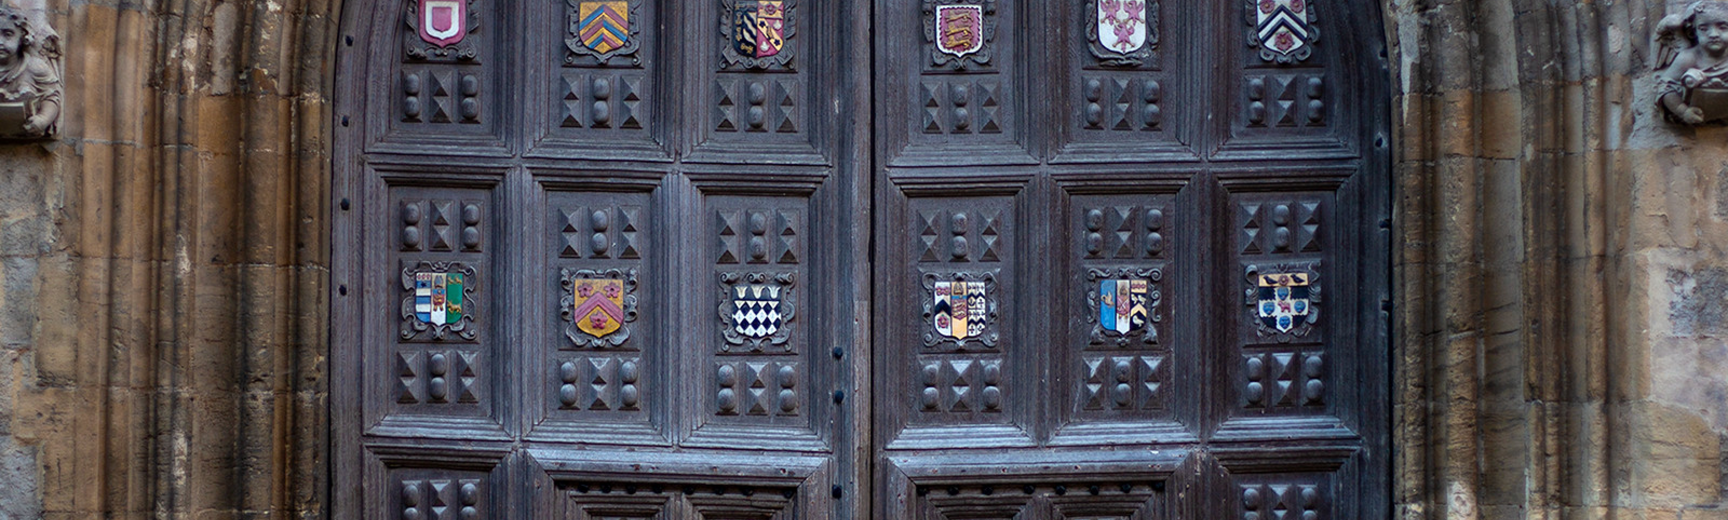 Bodleian entry door